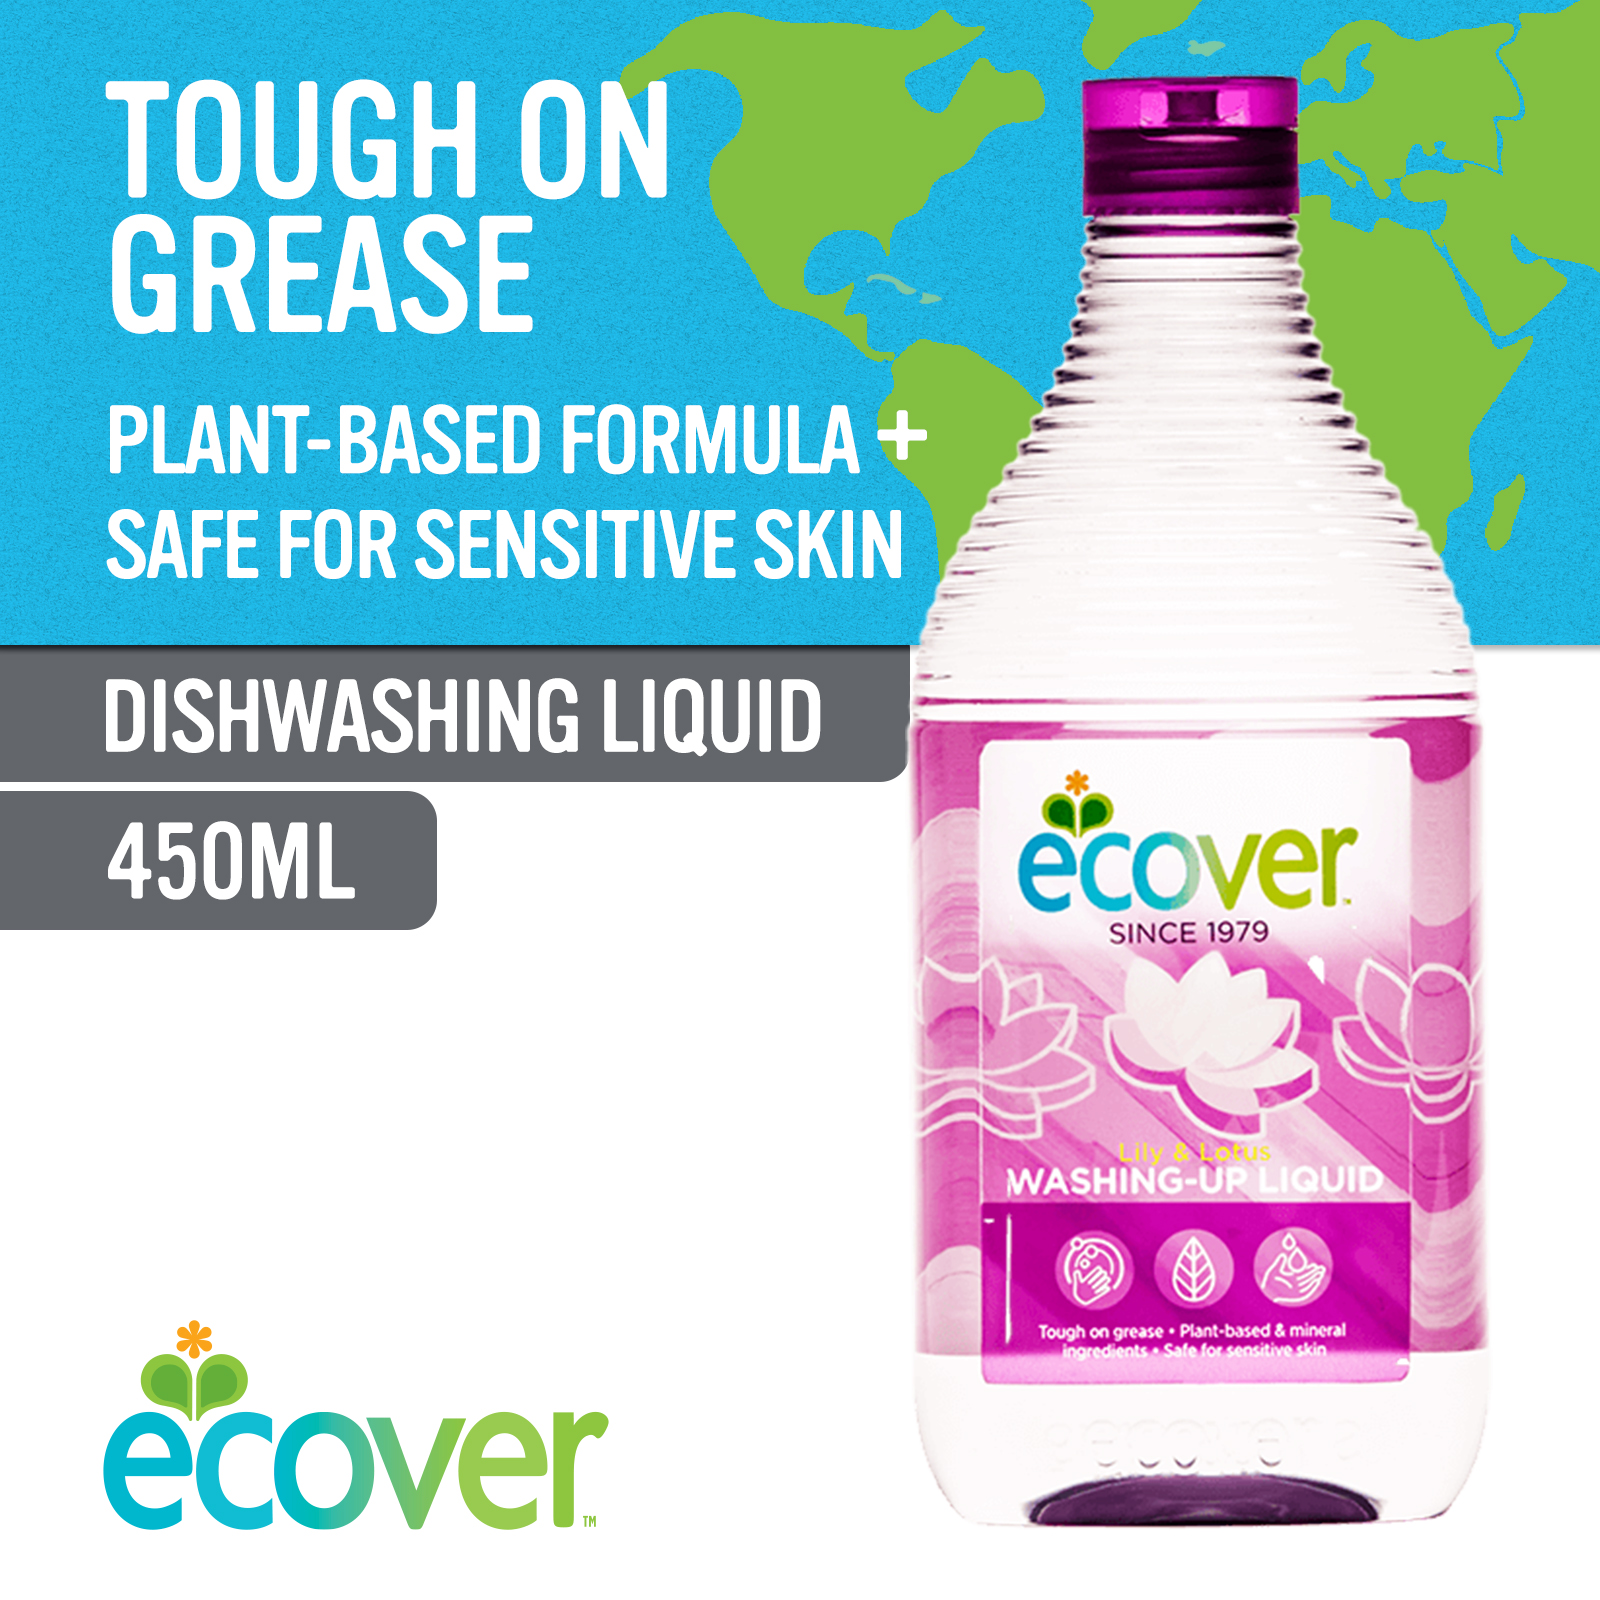 Ecover Washing-Up Liquid - Lily & Lotus 450ml